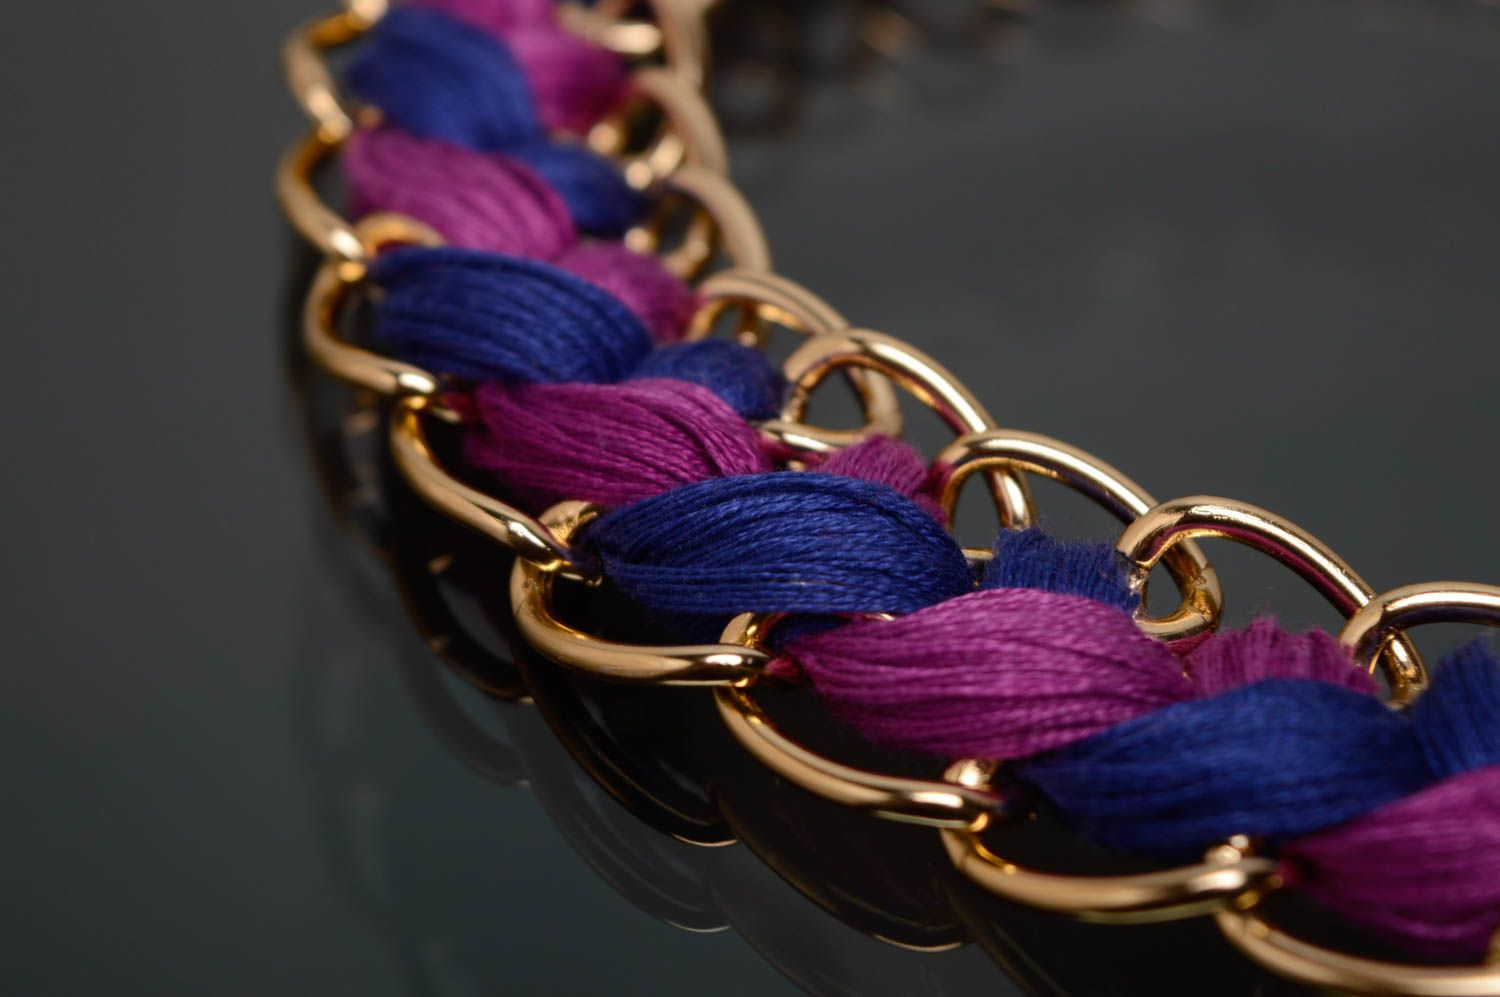 Woven moulin thread necklace photo 3